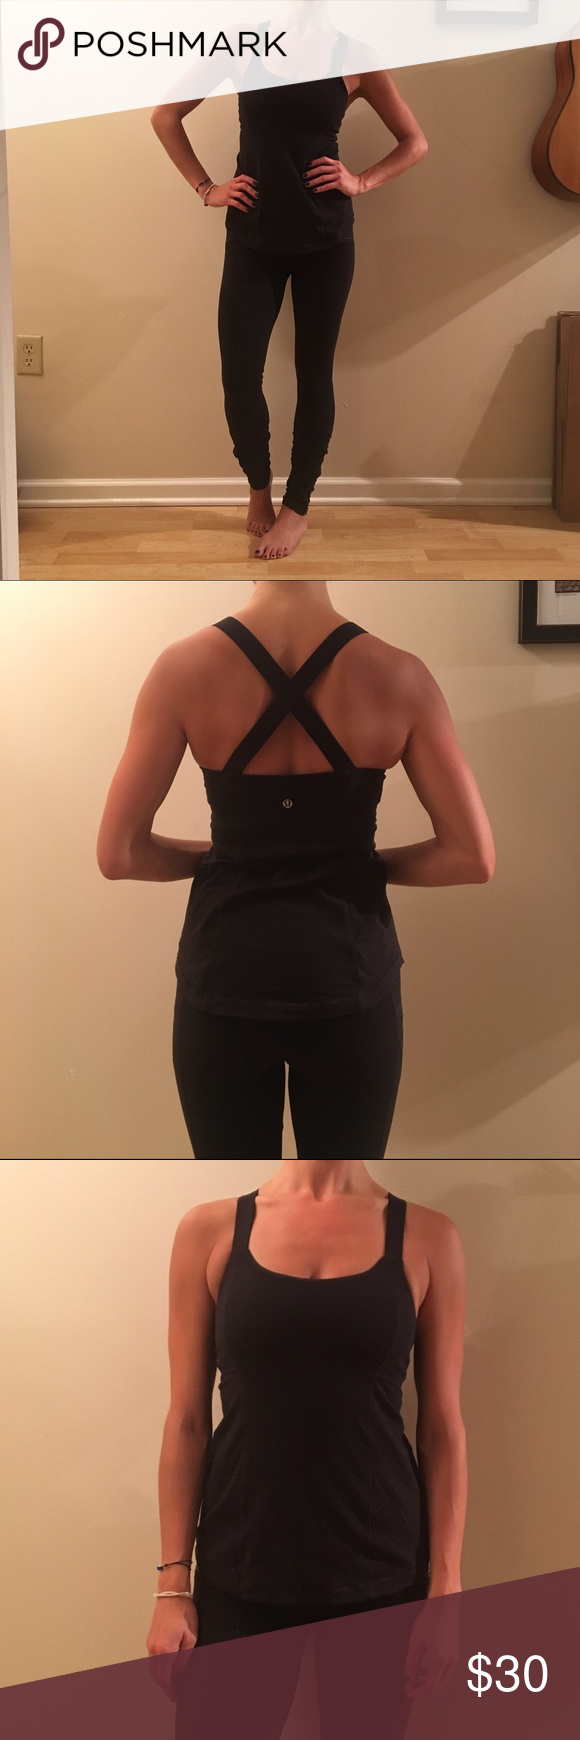 Lululemon Black X-Strap Tank Black Lululemon tank with elastic criss-cross straps lululemon athletica Tops Tank Tops